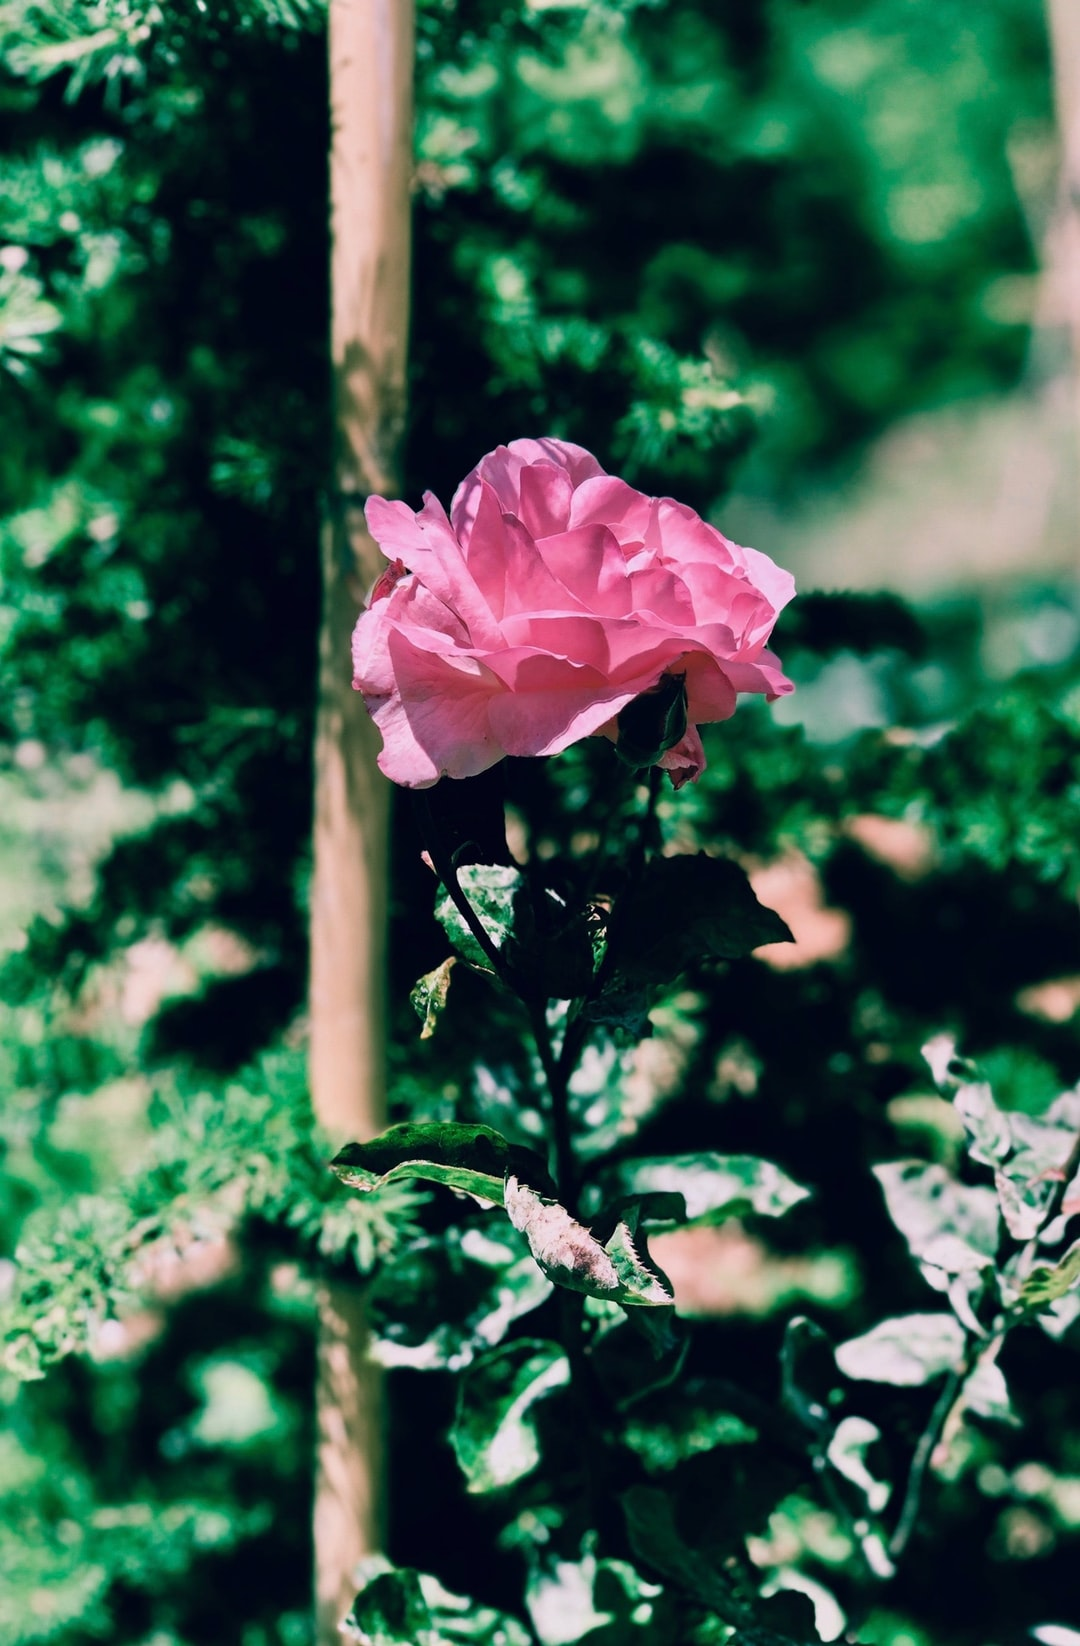 A beautiful pink rose standing tall amongst vibrant green leaves.